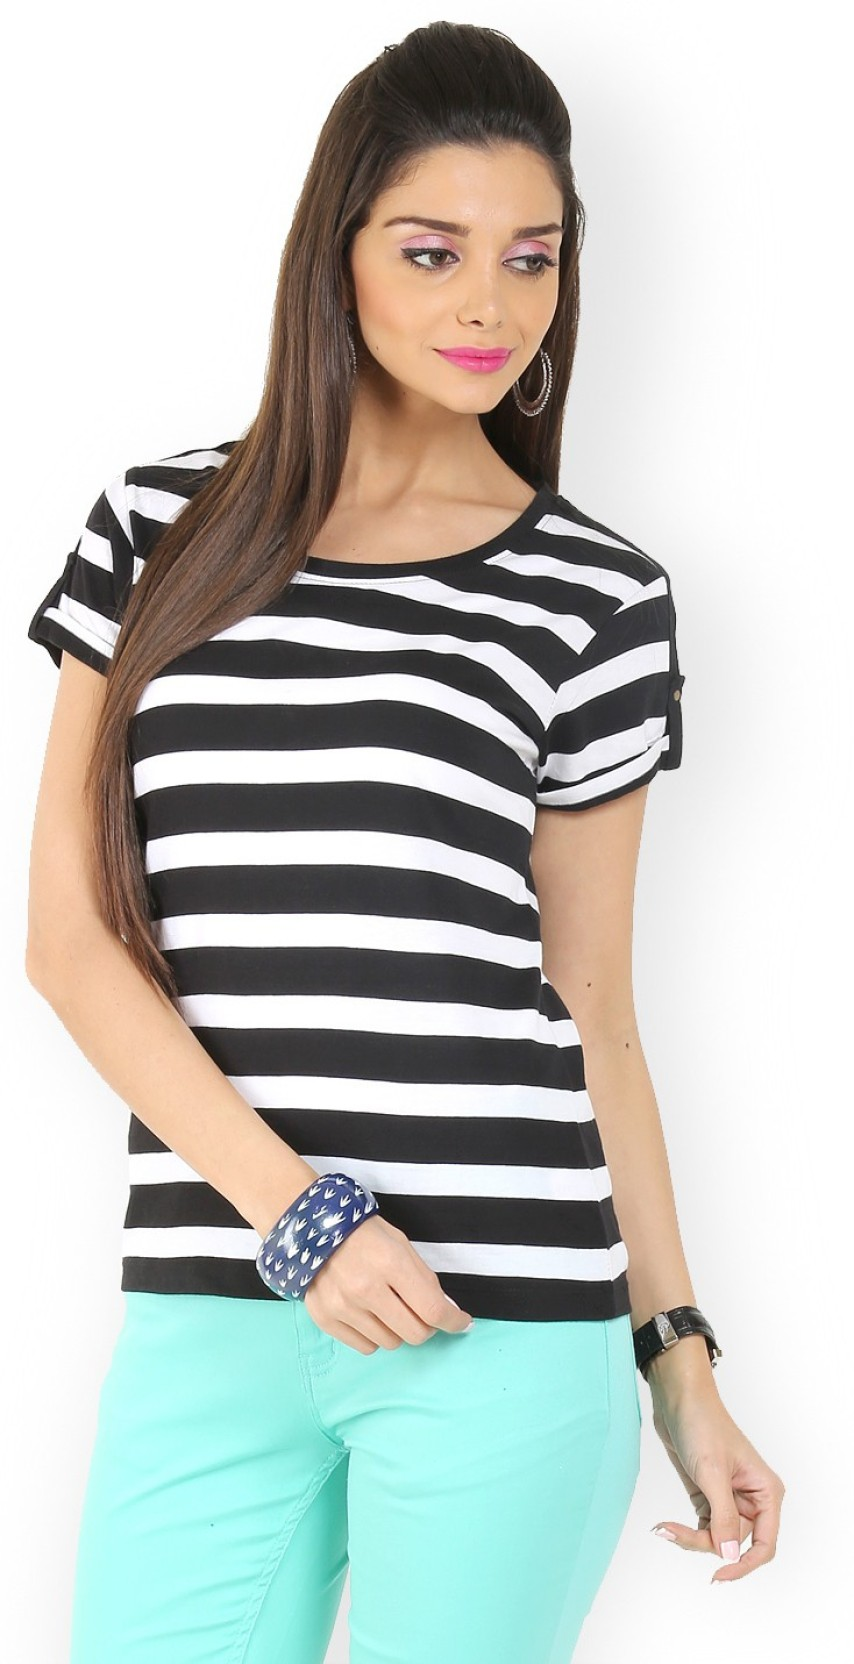 8d595eed1c4 Black And White Striped Womens Tee Shirt - raveitsafe